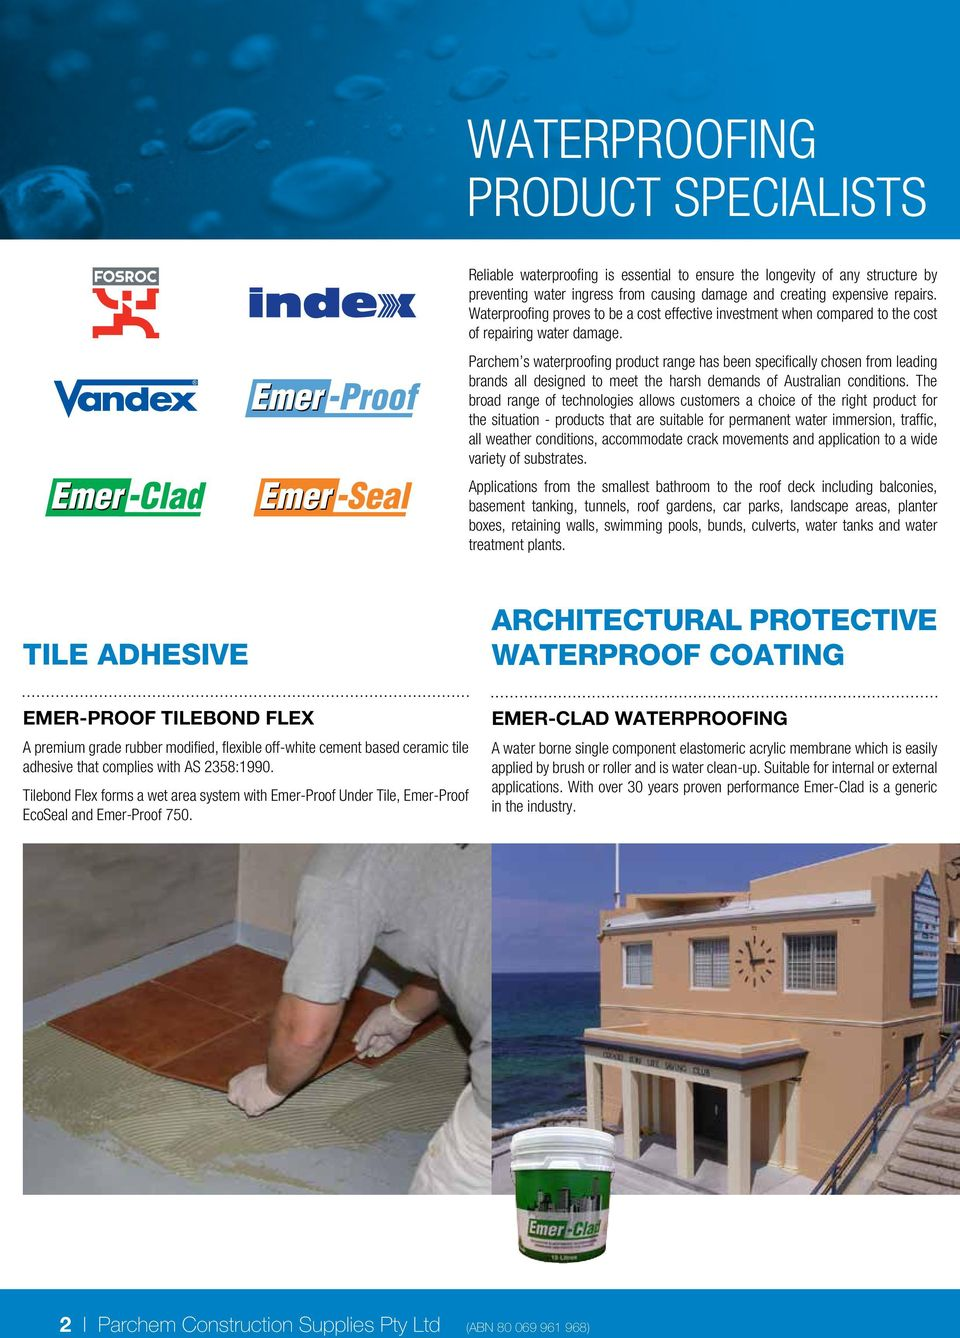 Parchem s waterproofing product range has been specifically chosen from leading brands all designed to meet the harsh demands of Australian conditions.